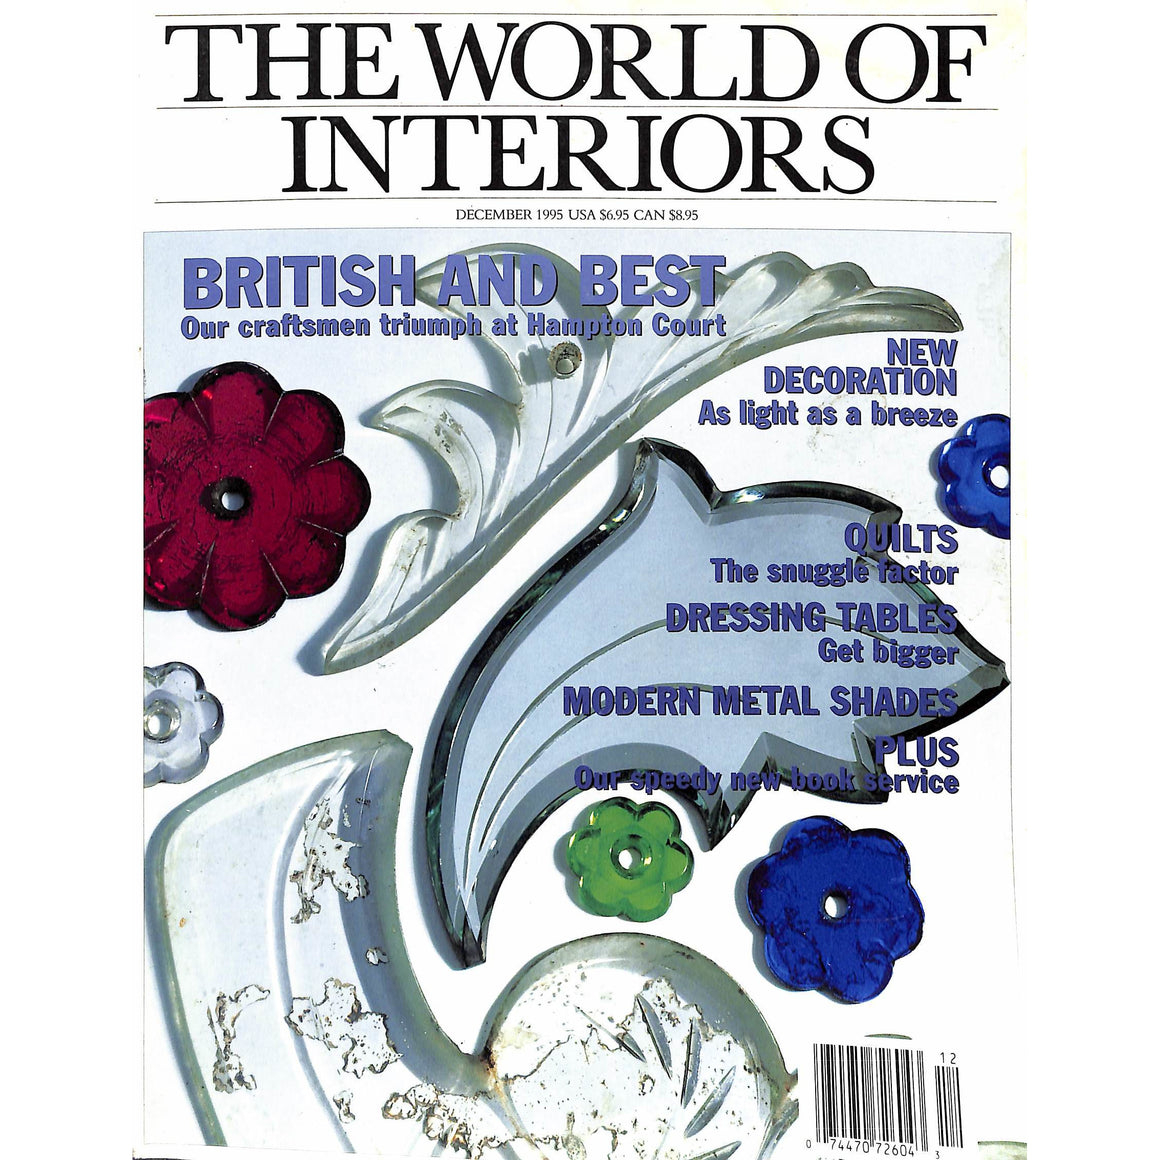 The World of Interiors December 1995